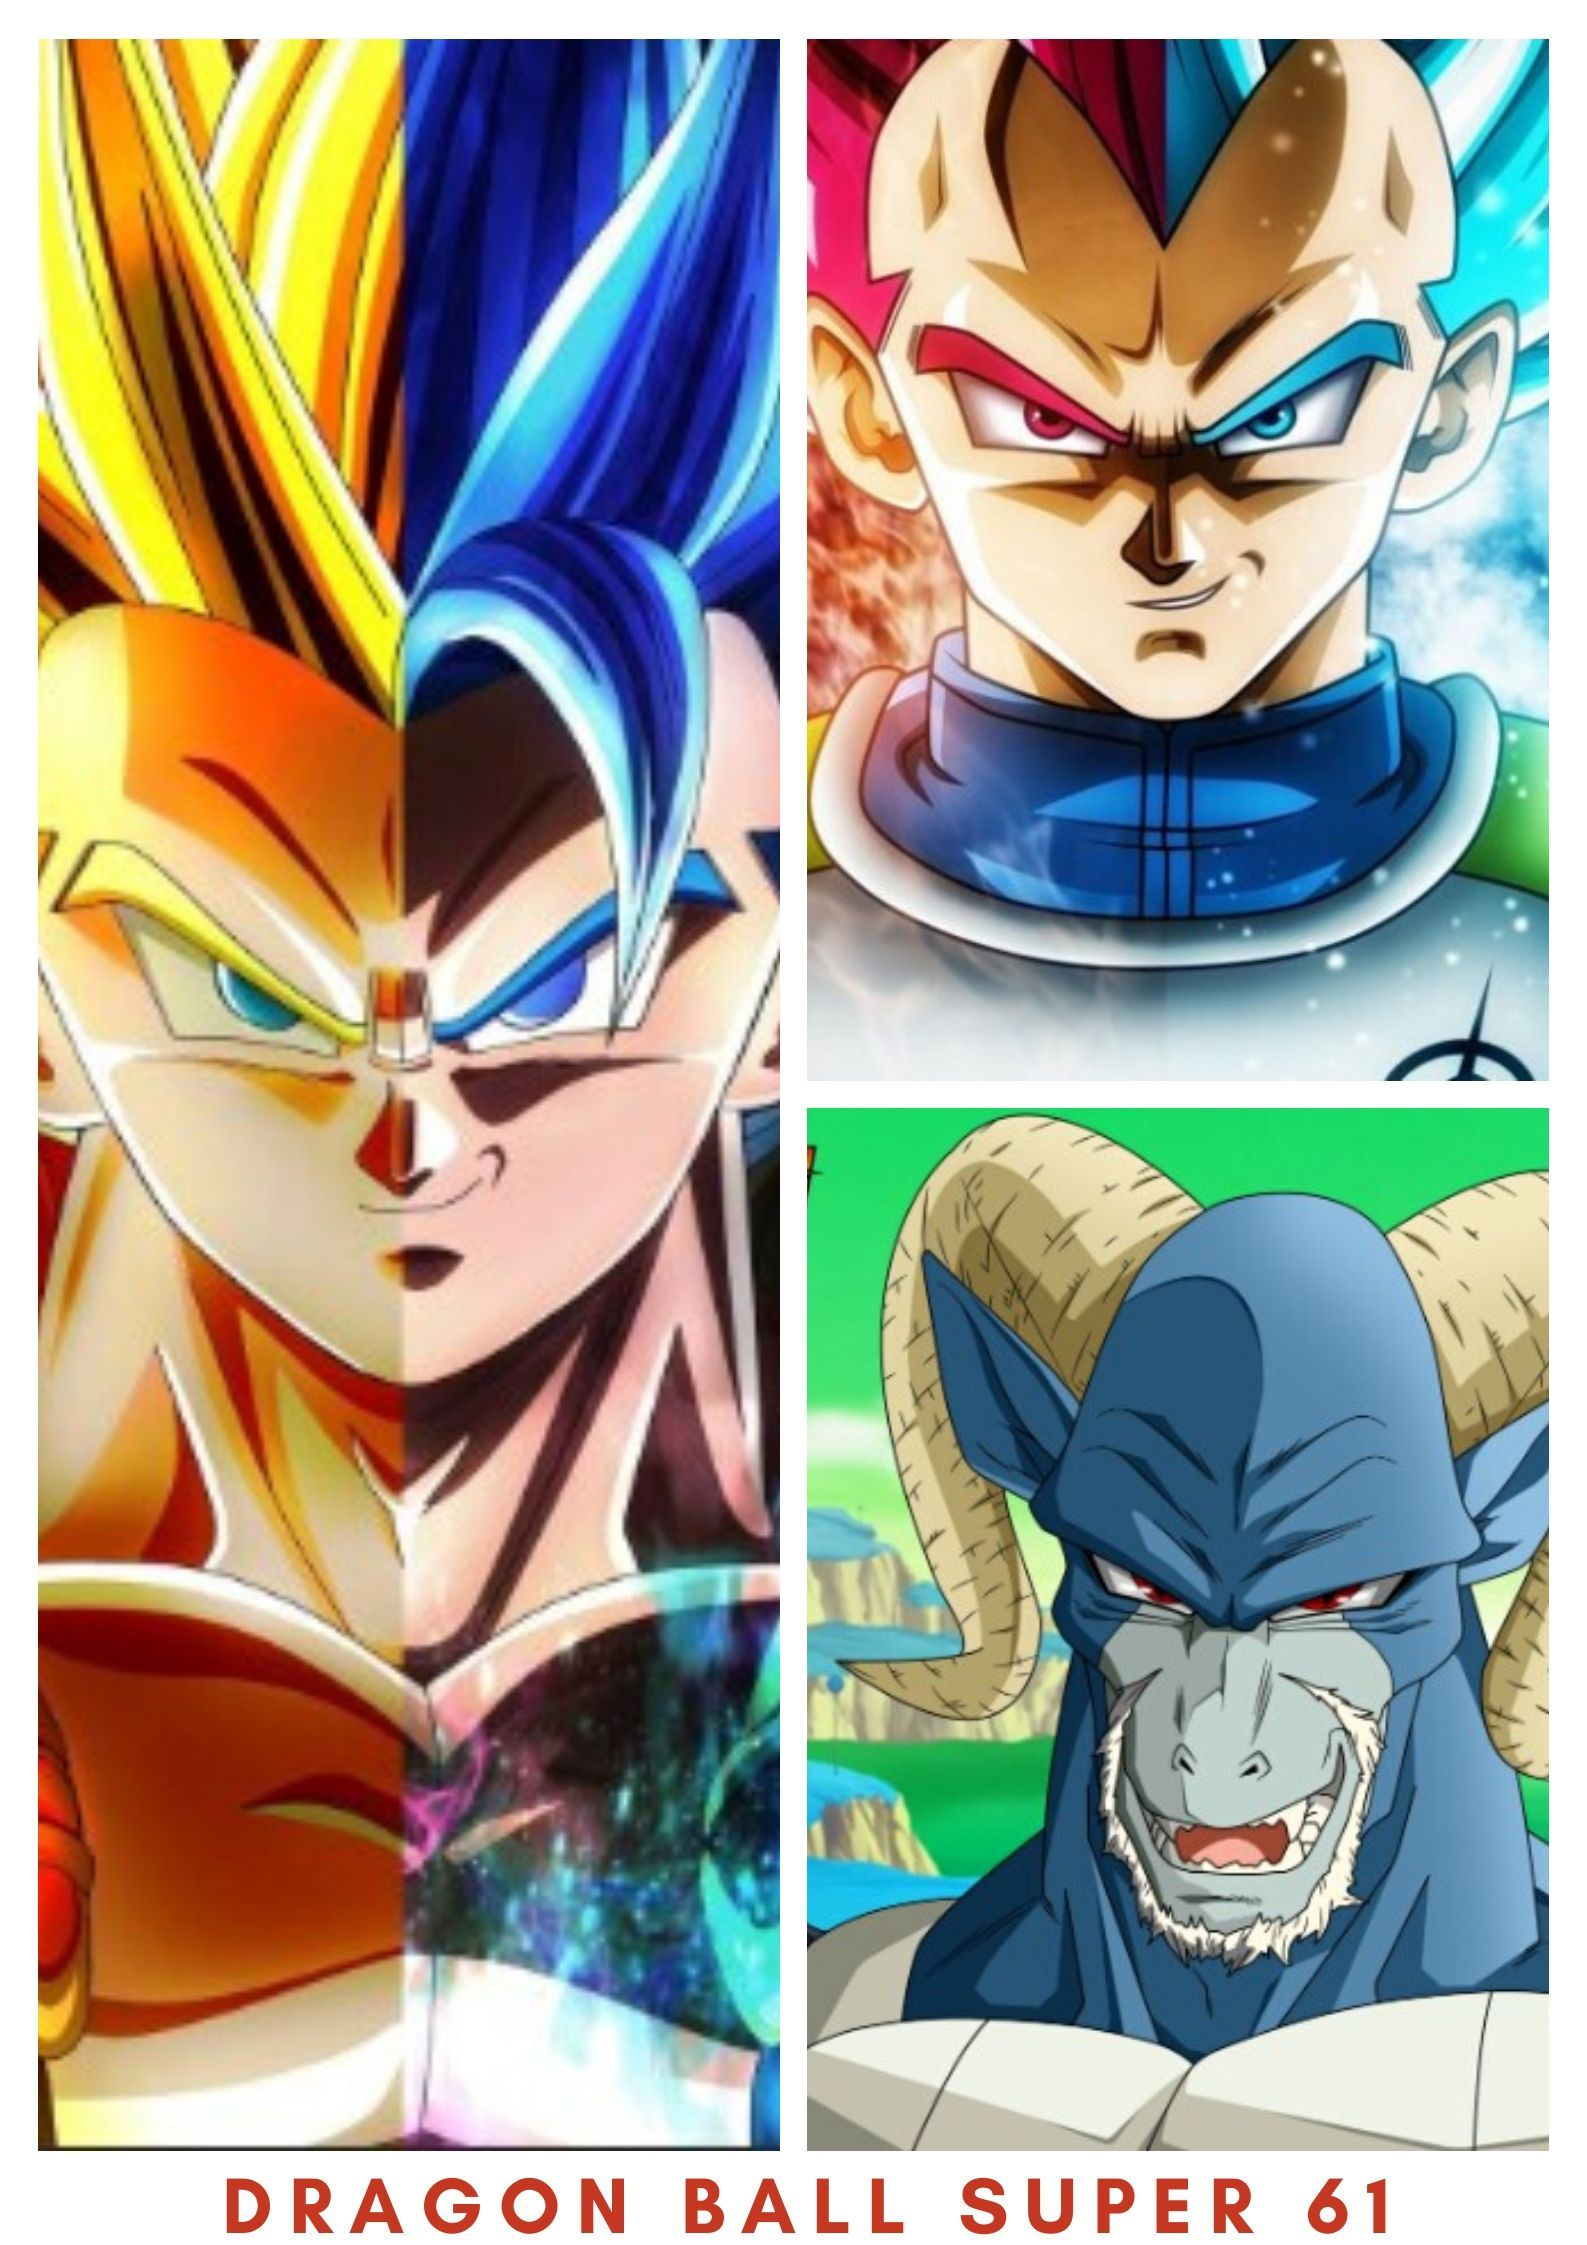 Dragon ball super chapter 61 release date spoilers in